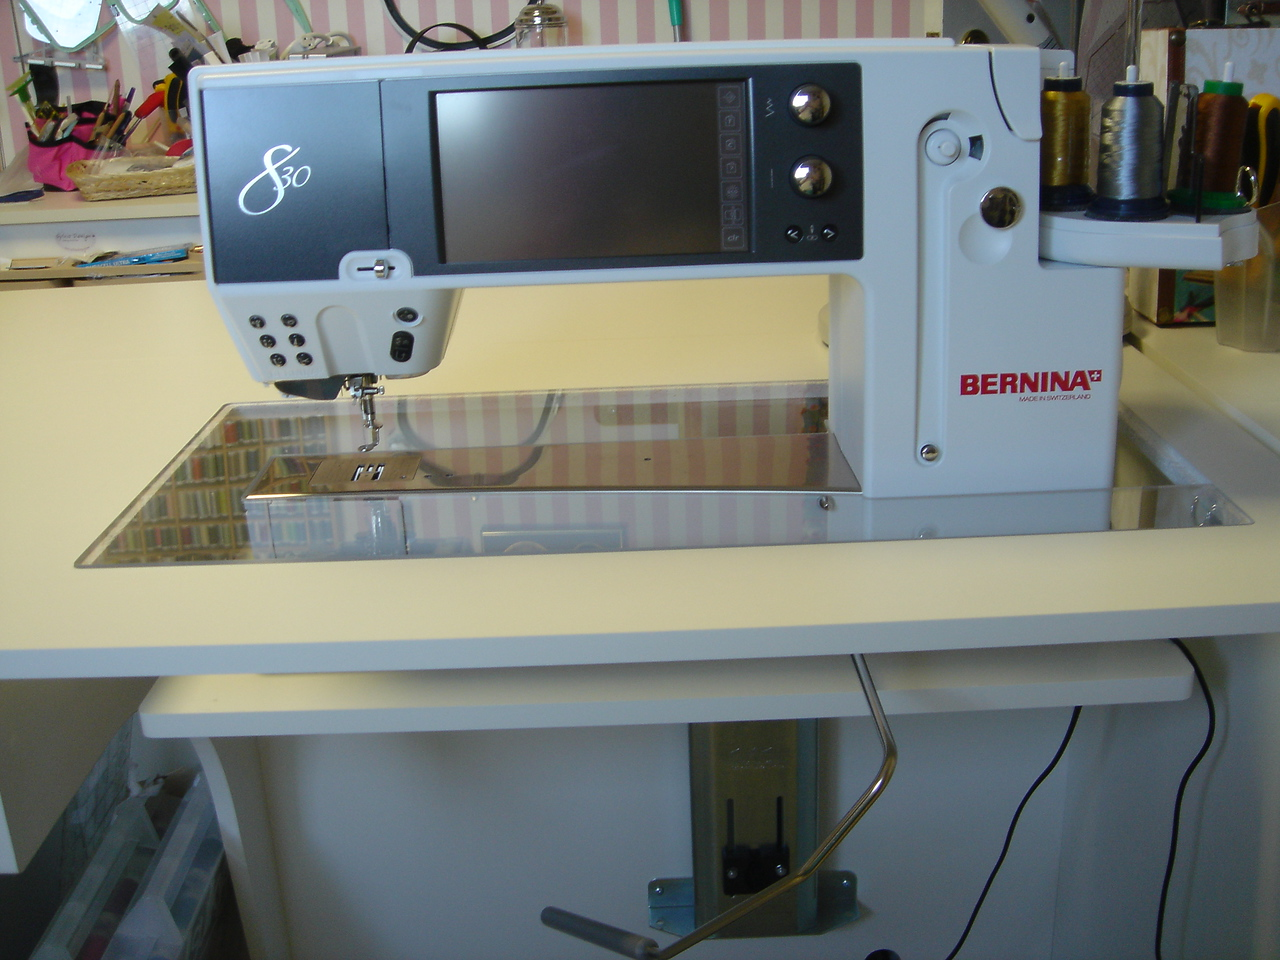 Bernina 830 in sewing position